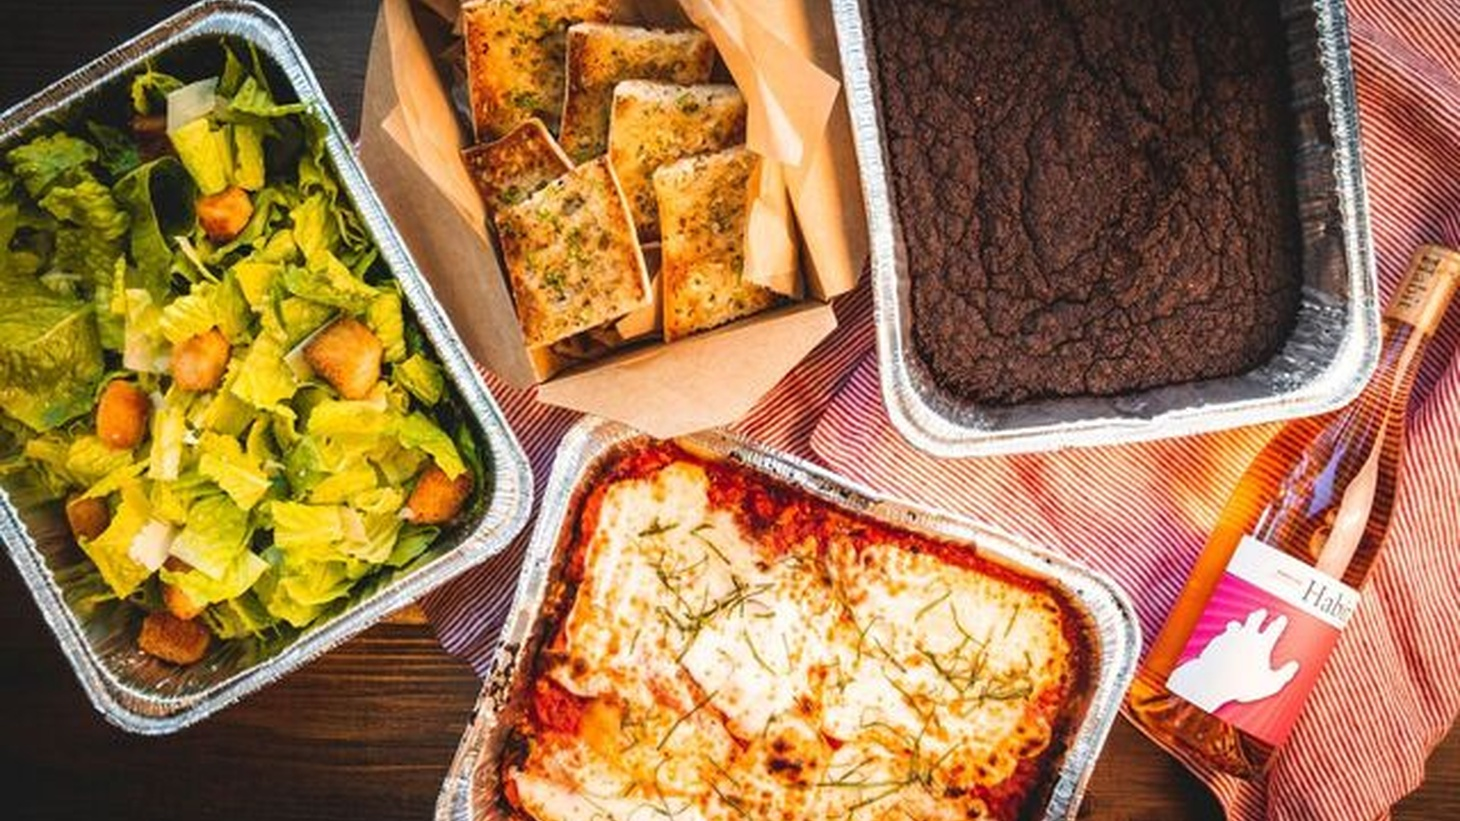 Secret Lasagna and Market offers takeout and delivery, and provides food to struggling restaurant workers.